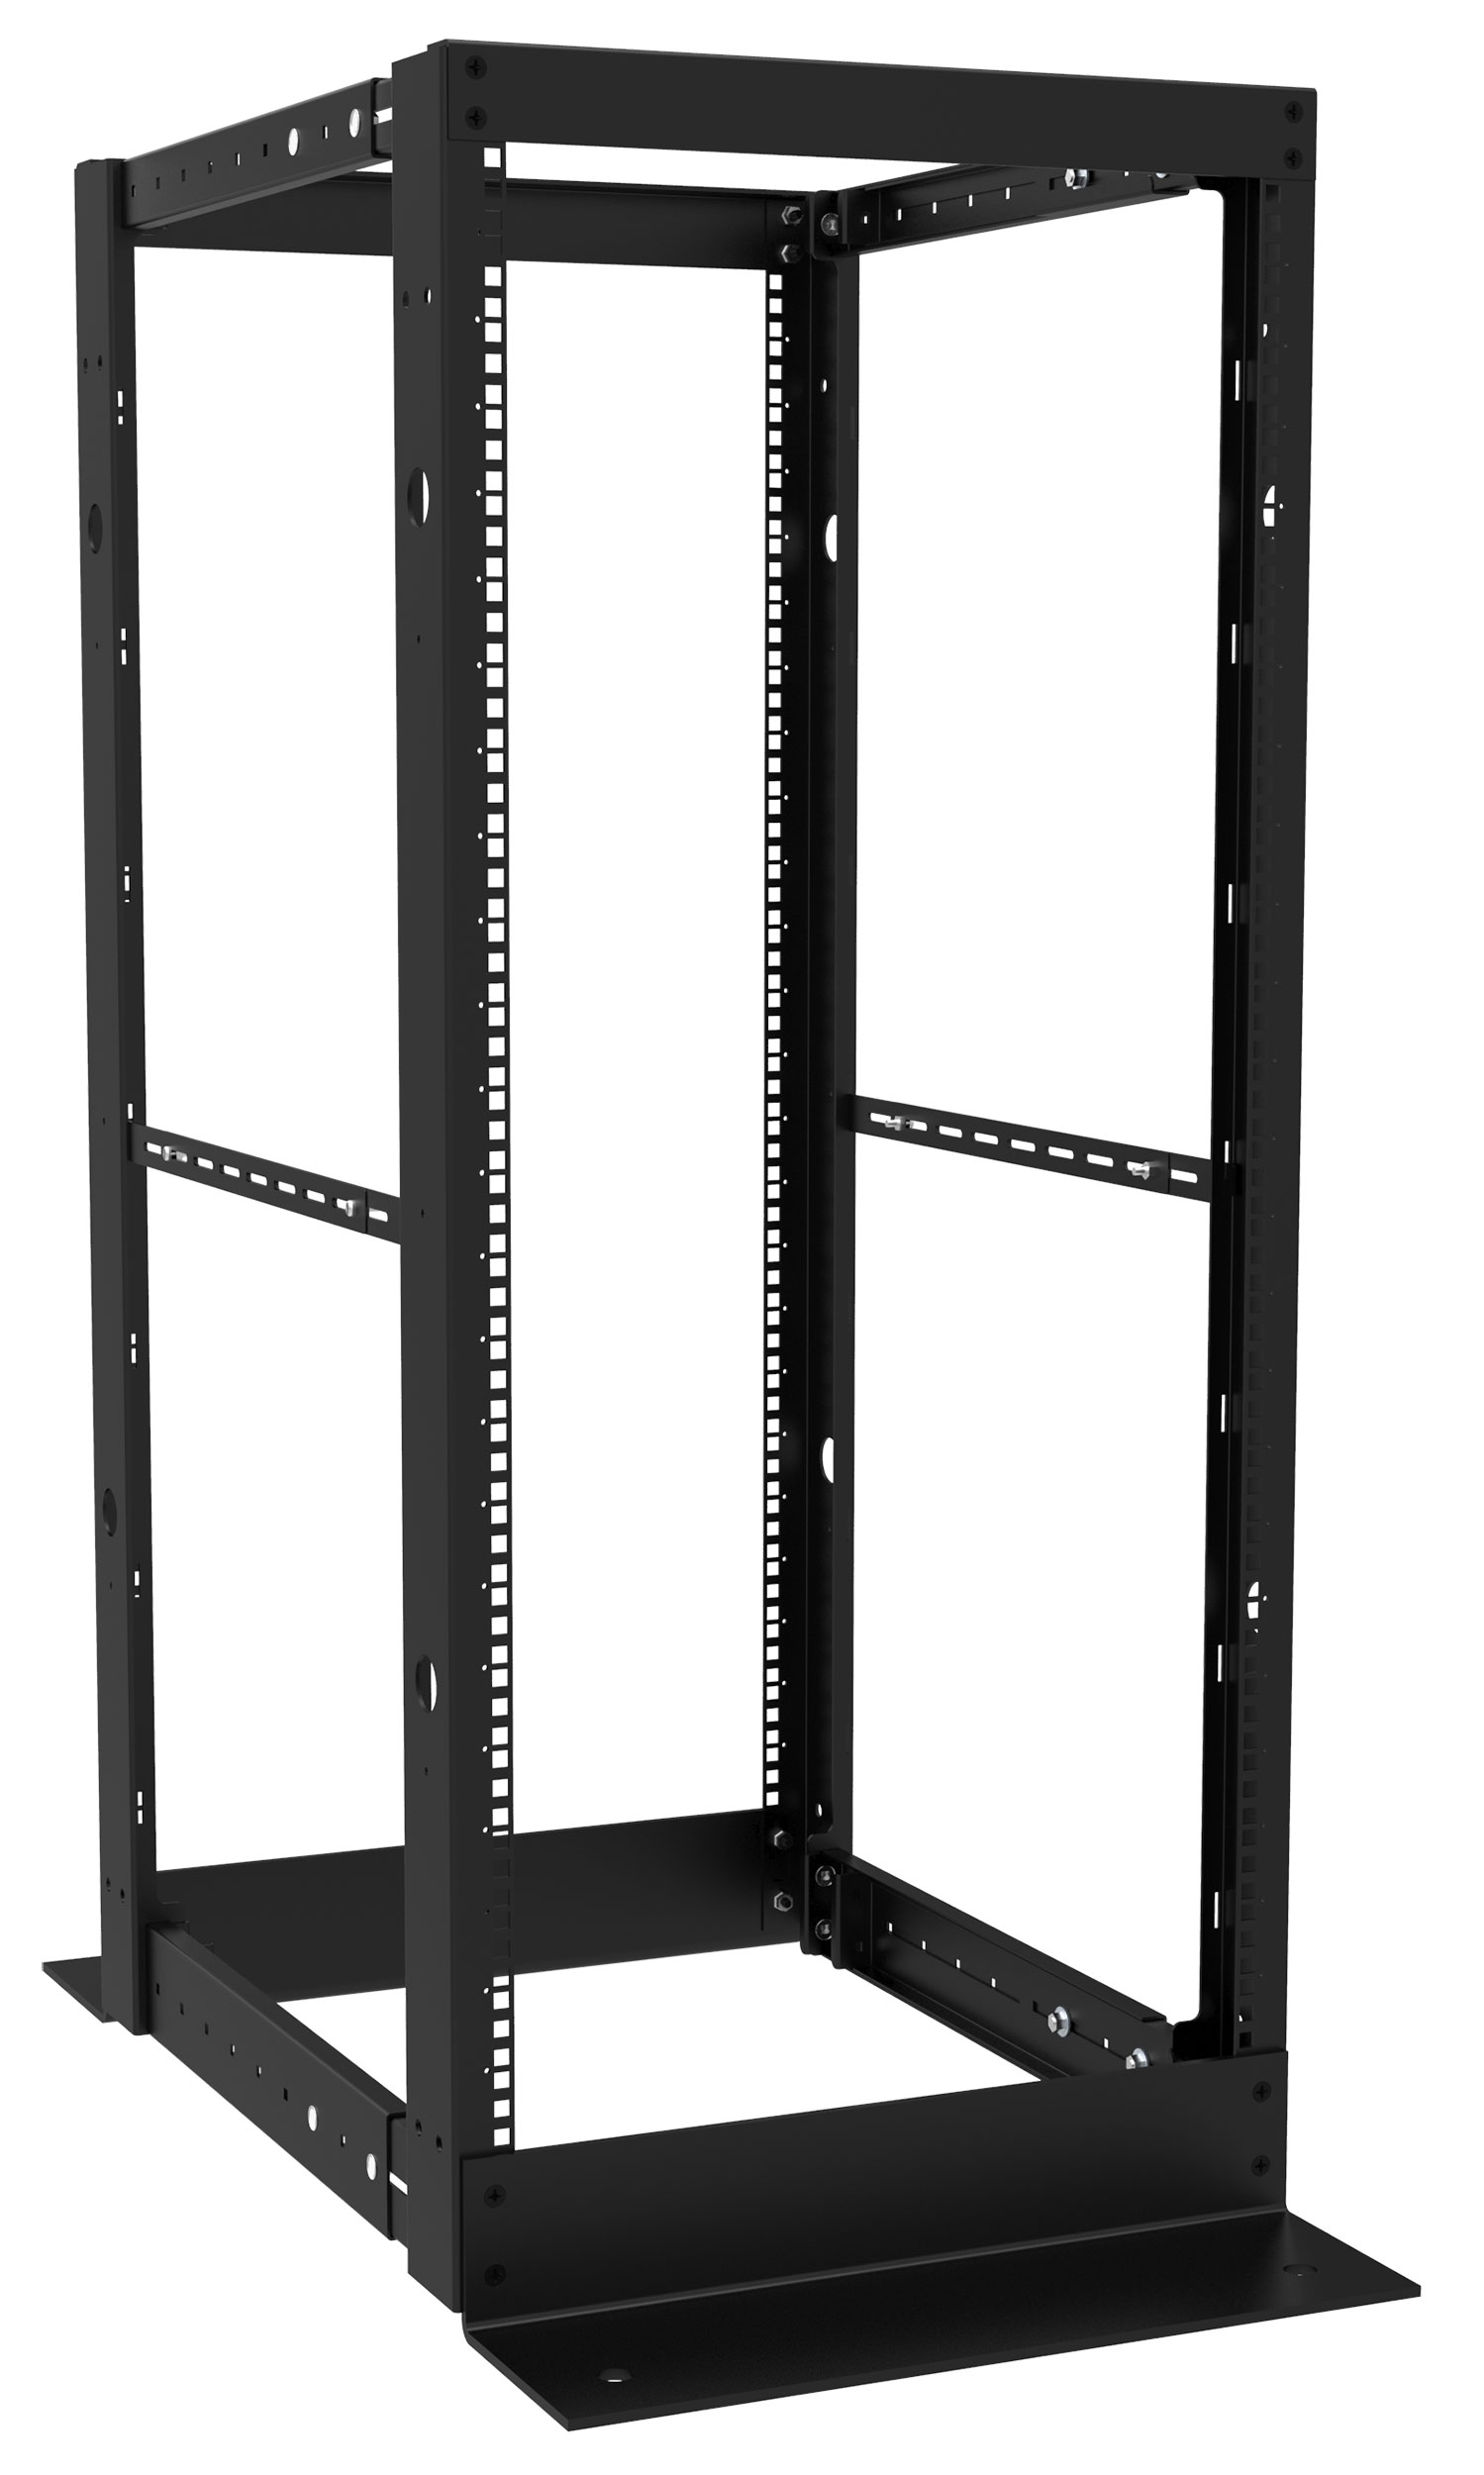 knockdown steel 4 post rack dc4r series hammond mfg 89596